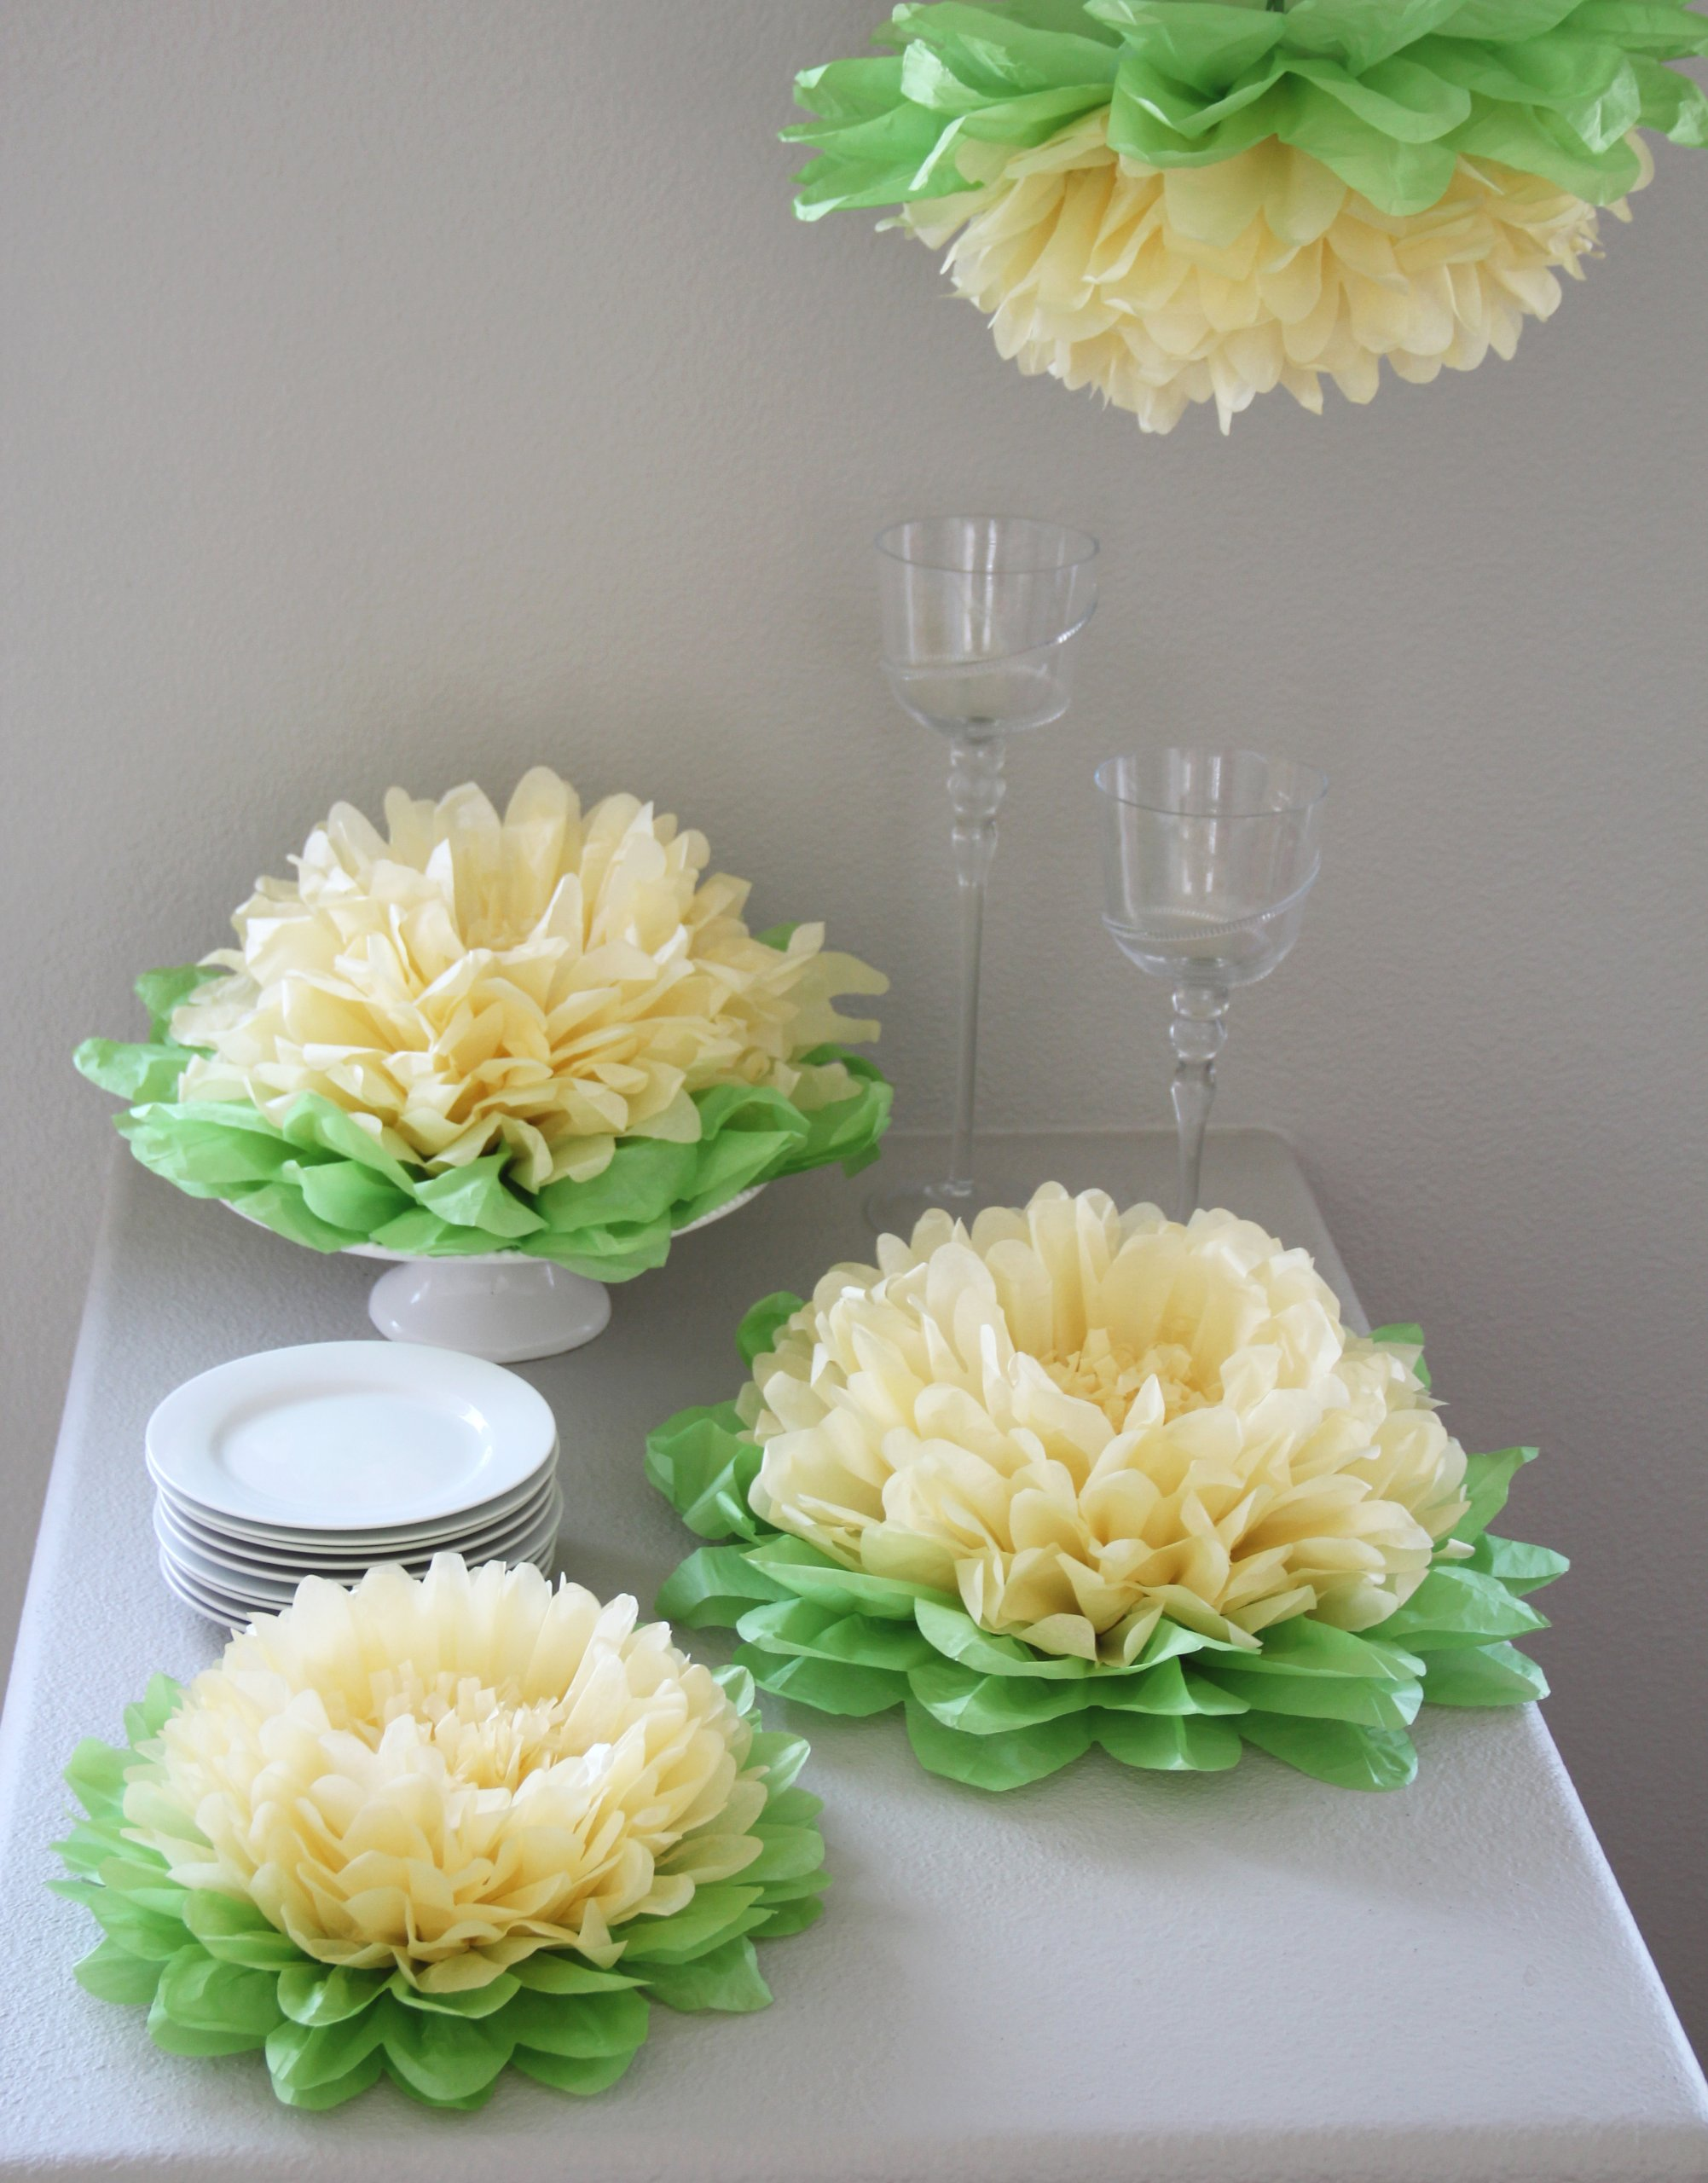 Butterfly Craze Girls Party Decorations - Set of 7 Yellow Tissue Paper Flowers by Butterfly Craze